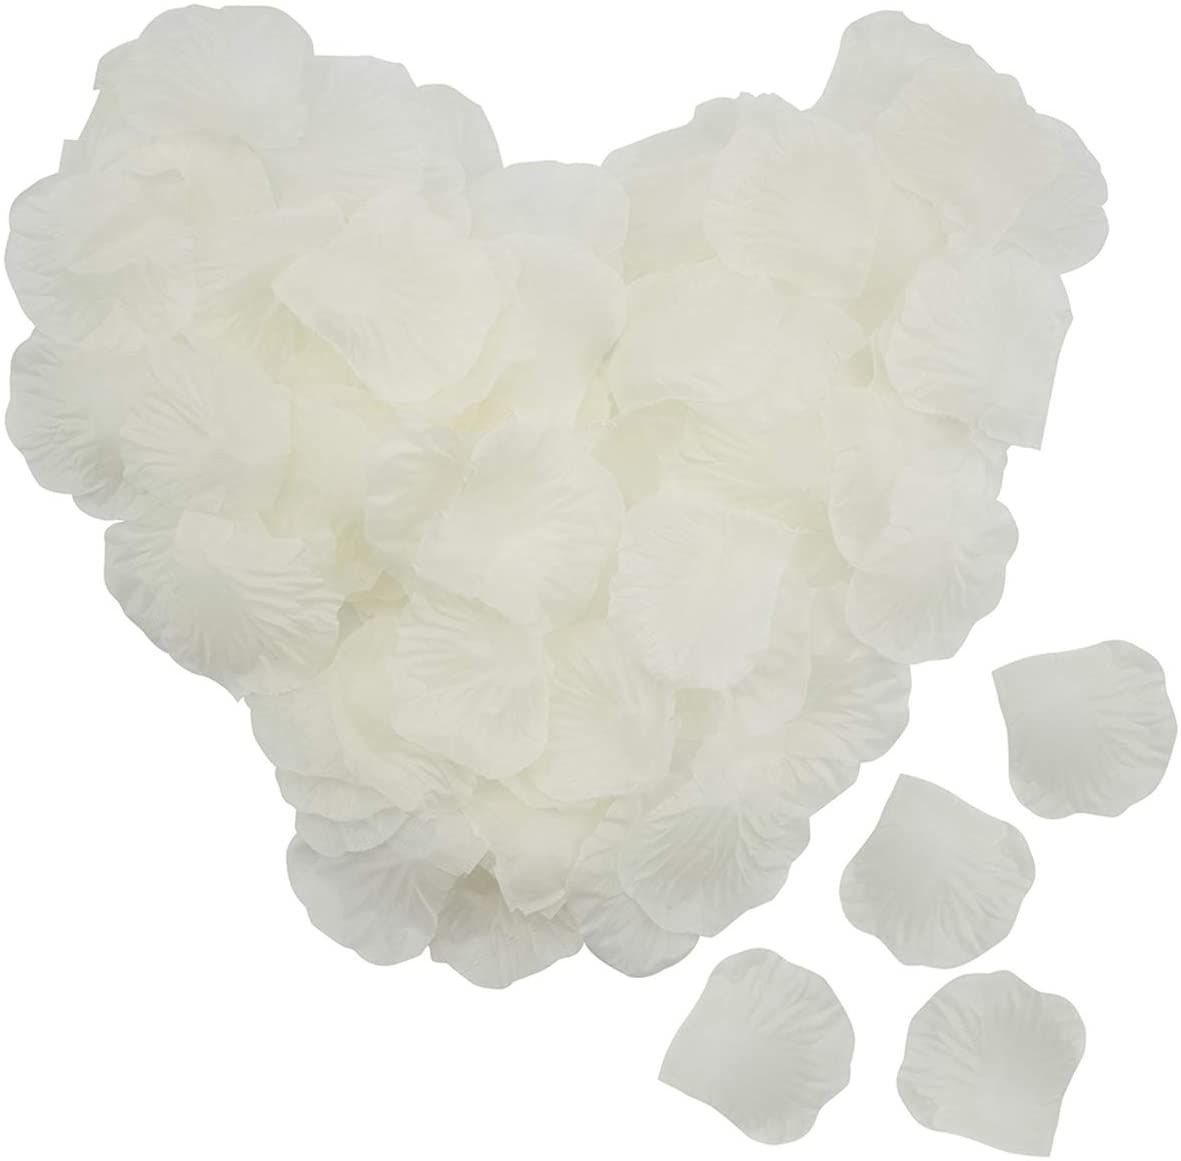 Foraineam 5000 Pieces Silk Rose Petals Artificial Rose Flower Petal for Wedding Party Home Hotel Valentine's Day Decoration, Ivory